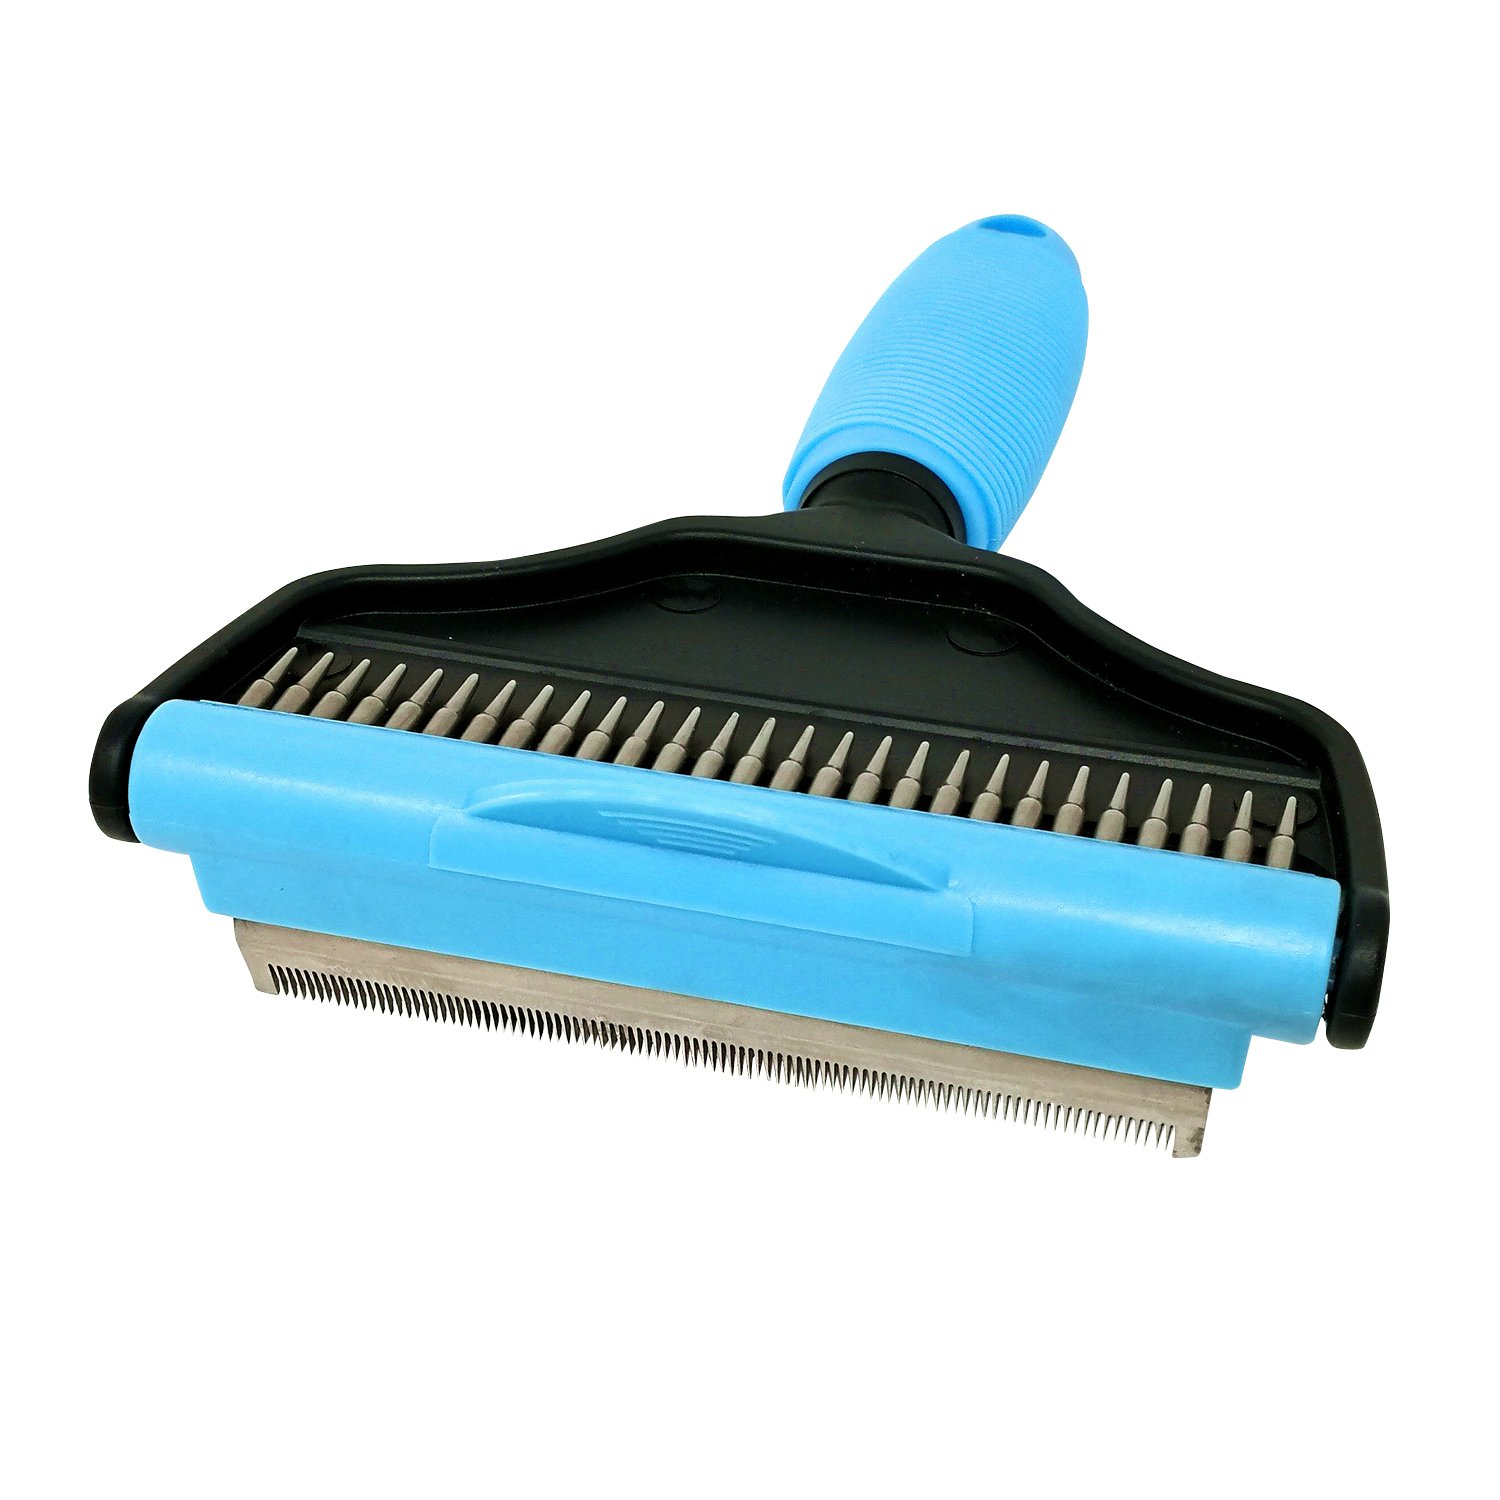 2 in 1 Pet Grooming Supplies Dog & Cat Slicker Brush Deshedding Tools for Small, Medium & Large Dogs & Cats with Short to Long Hair